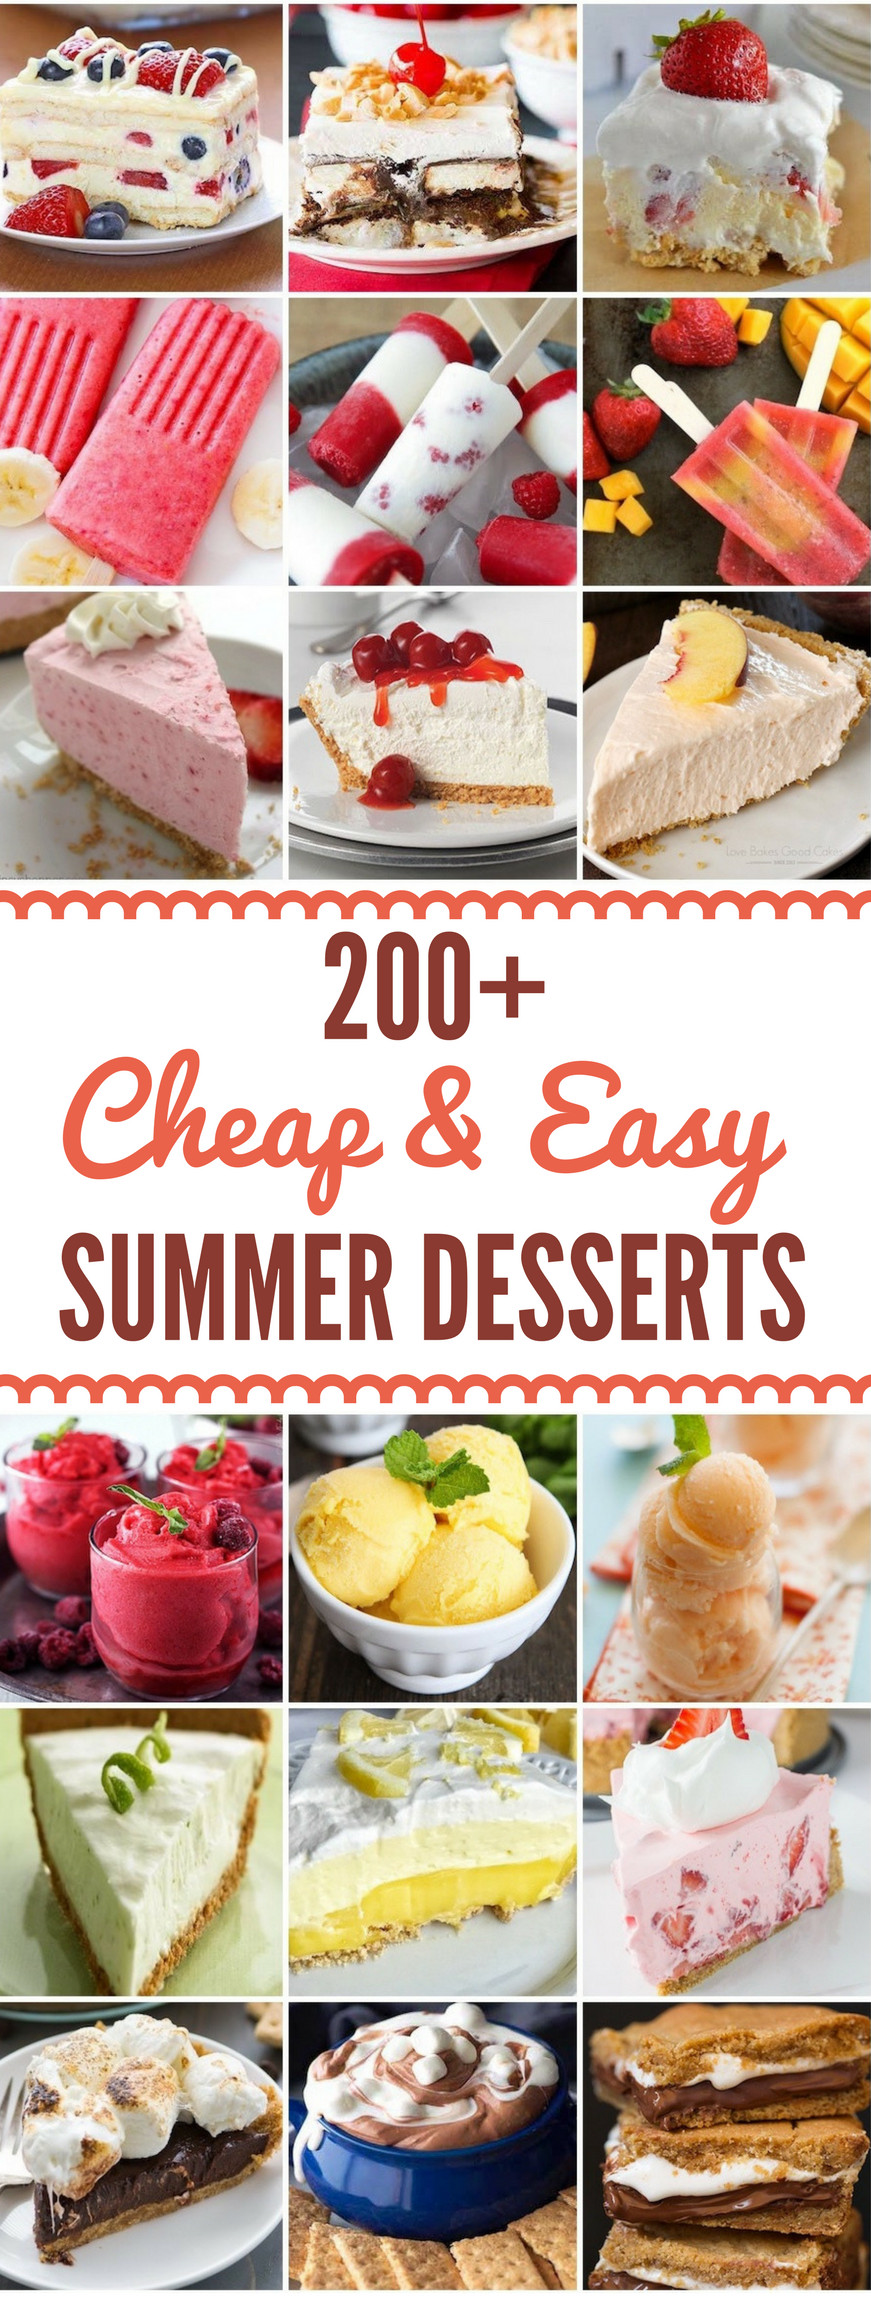 Simple Summer Desserts  200 Cheap and Easy Summer Desserts Prudent Penny Pincher